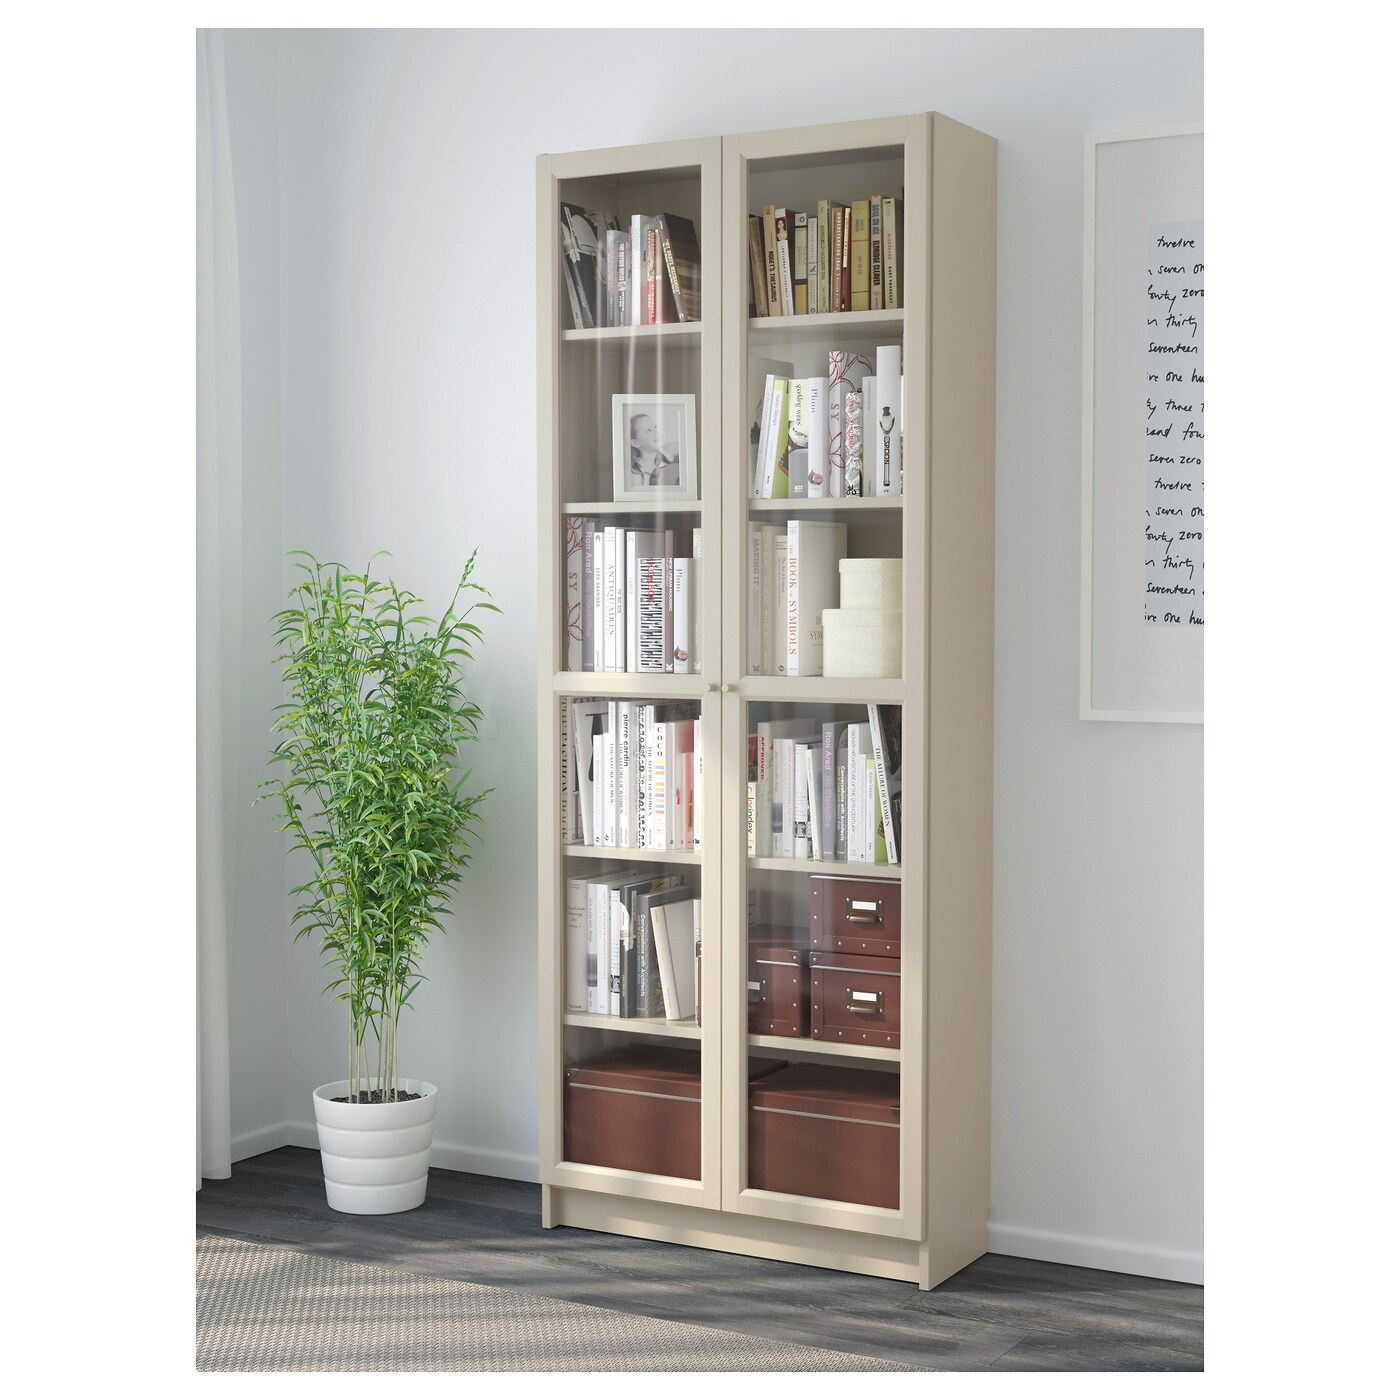 BILLY - Bookcase with glass doors, beige